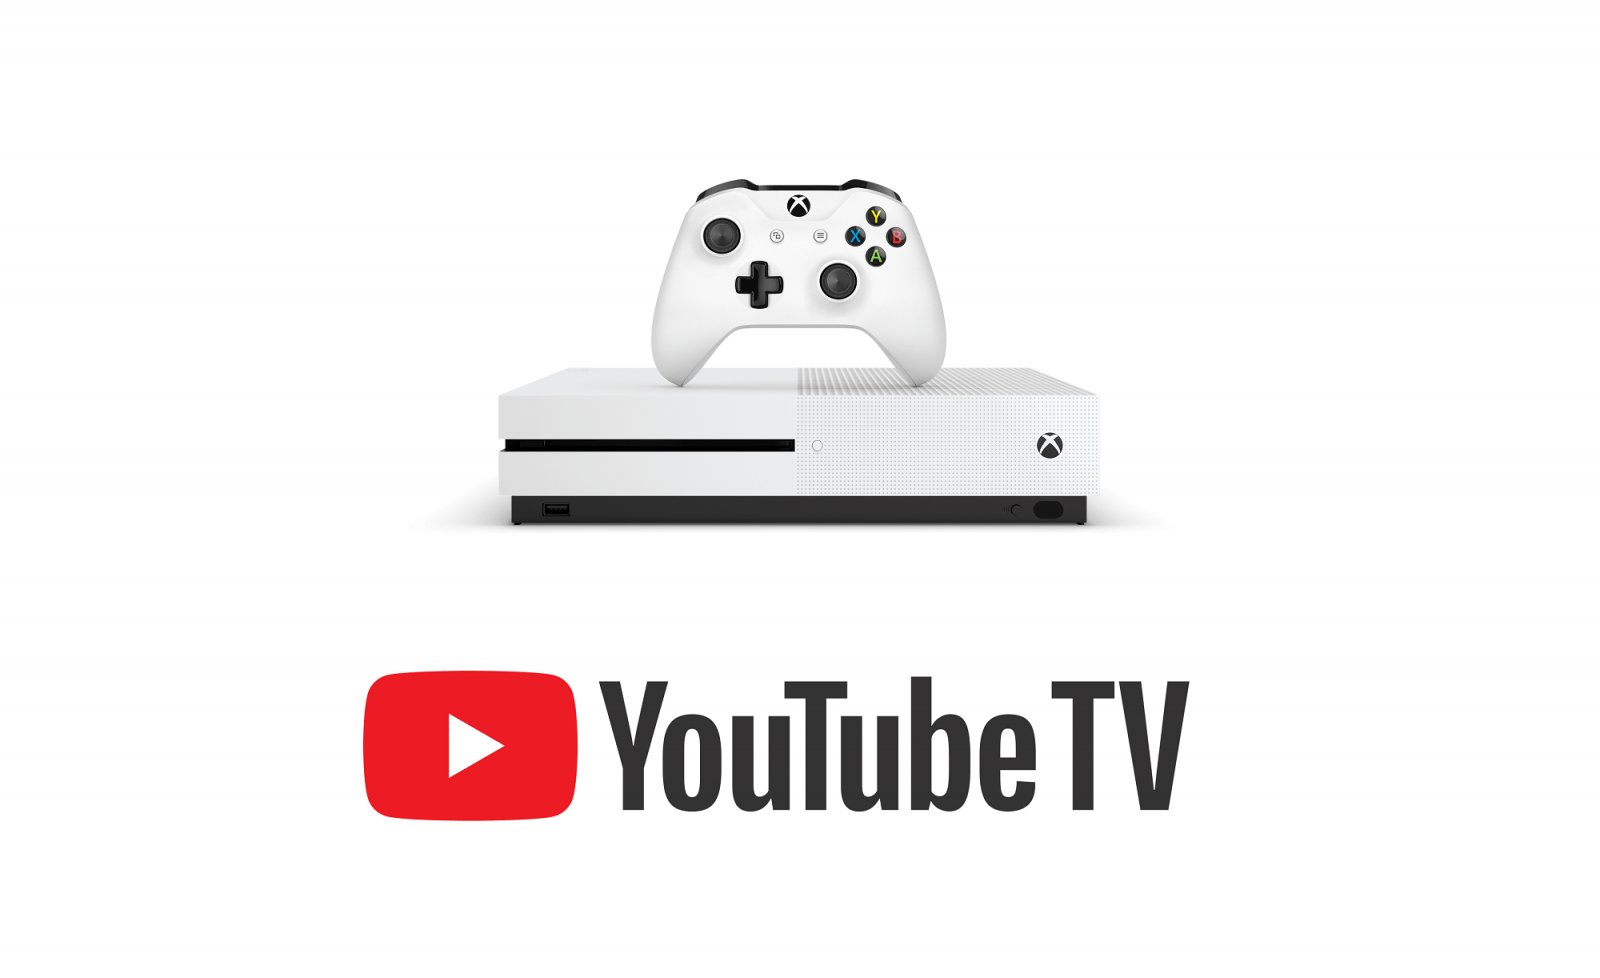 How to Install and Use YouTube TV on Xbox One